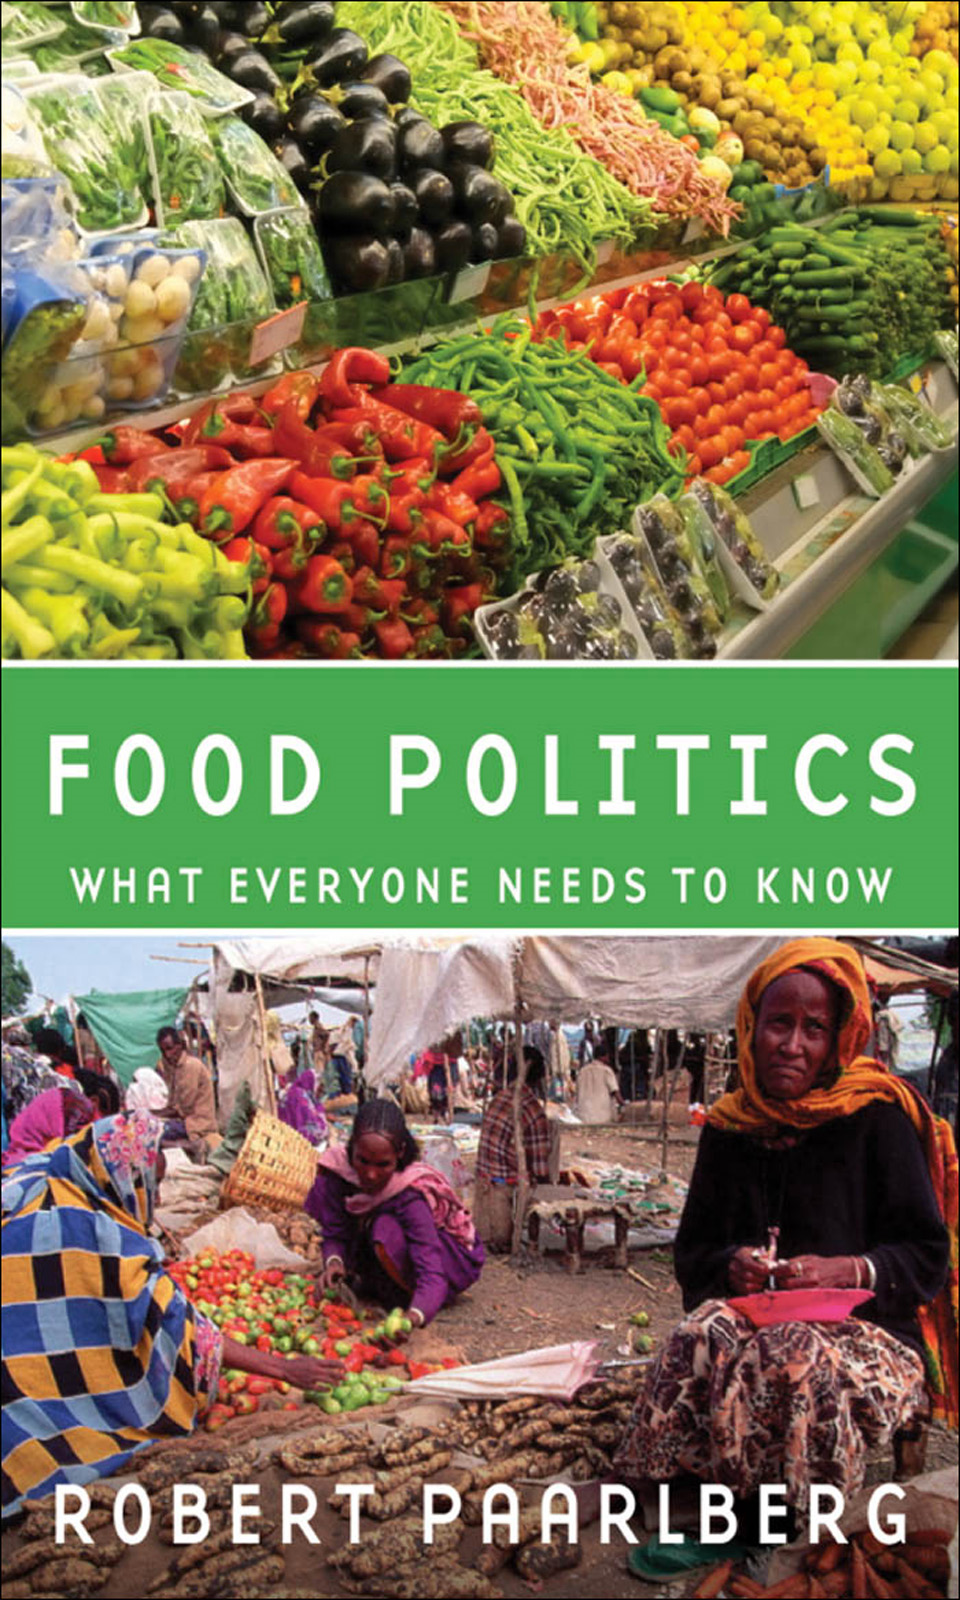 Food Politics:What Everyone Needs to Know  By: Robert Paarlberg